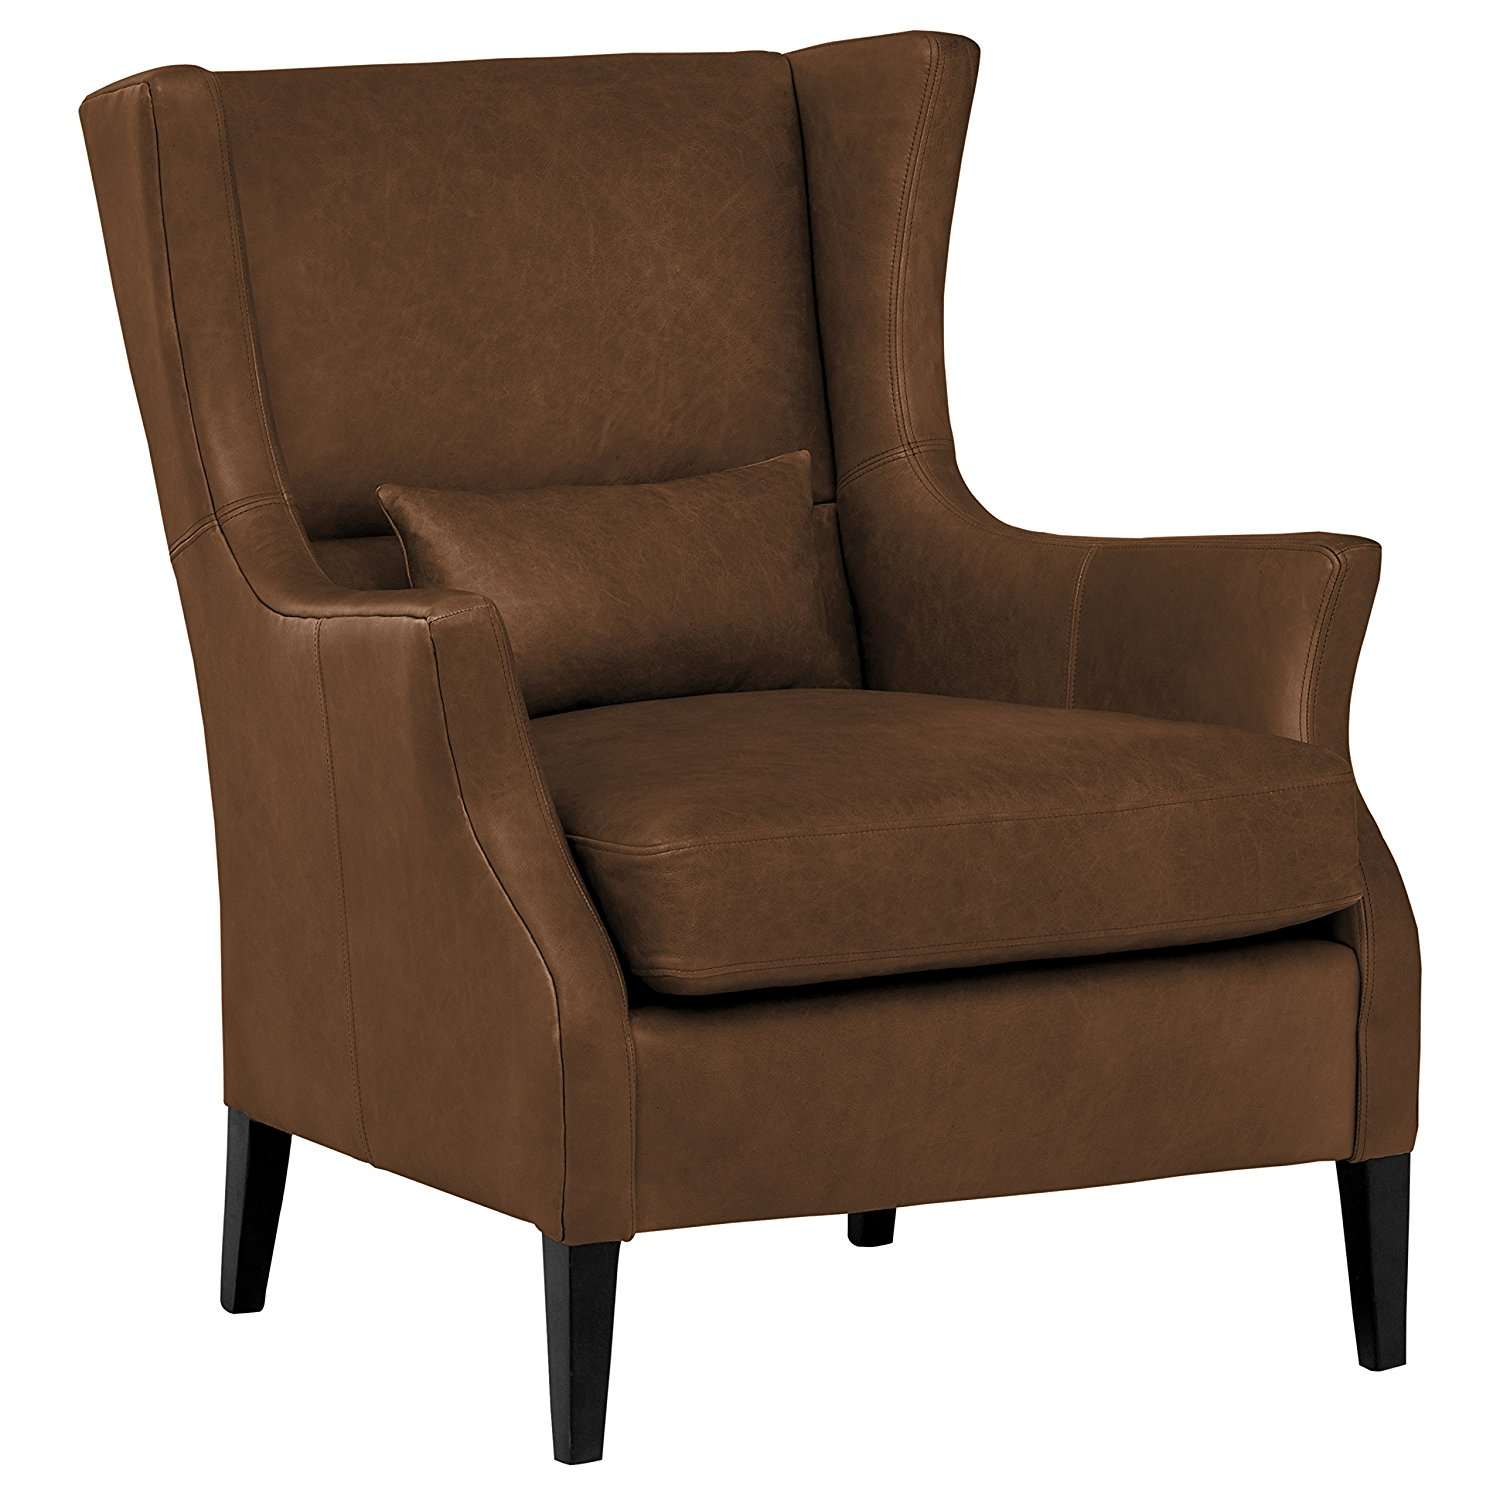 Stupendous Cheap Black Leather Wingback Chair Find Black Leather Caraccident5 Cool Chair Designs And Ideas Caraccident5Info